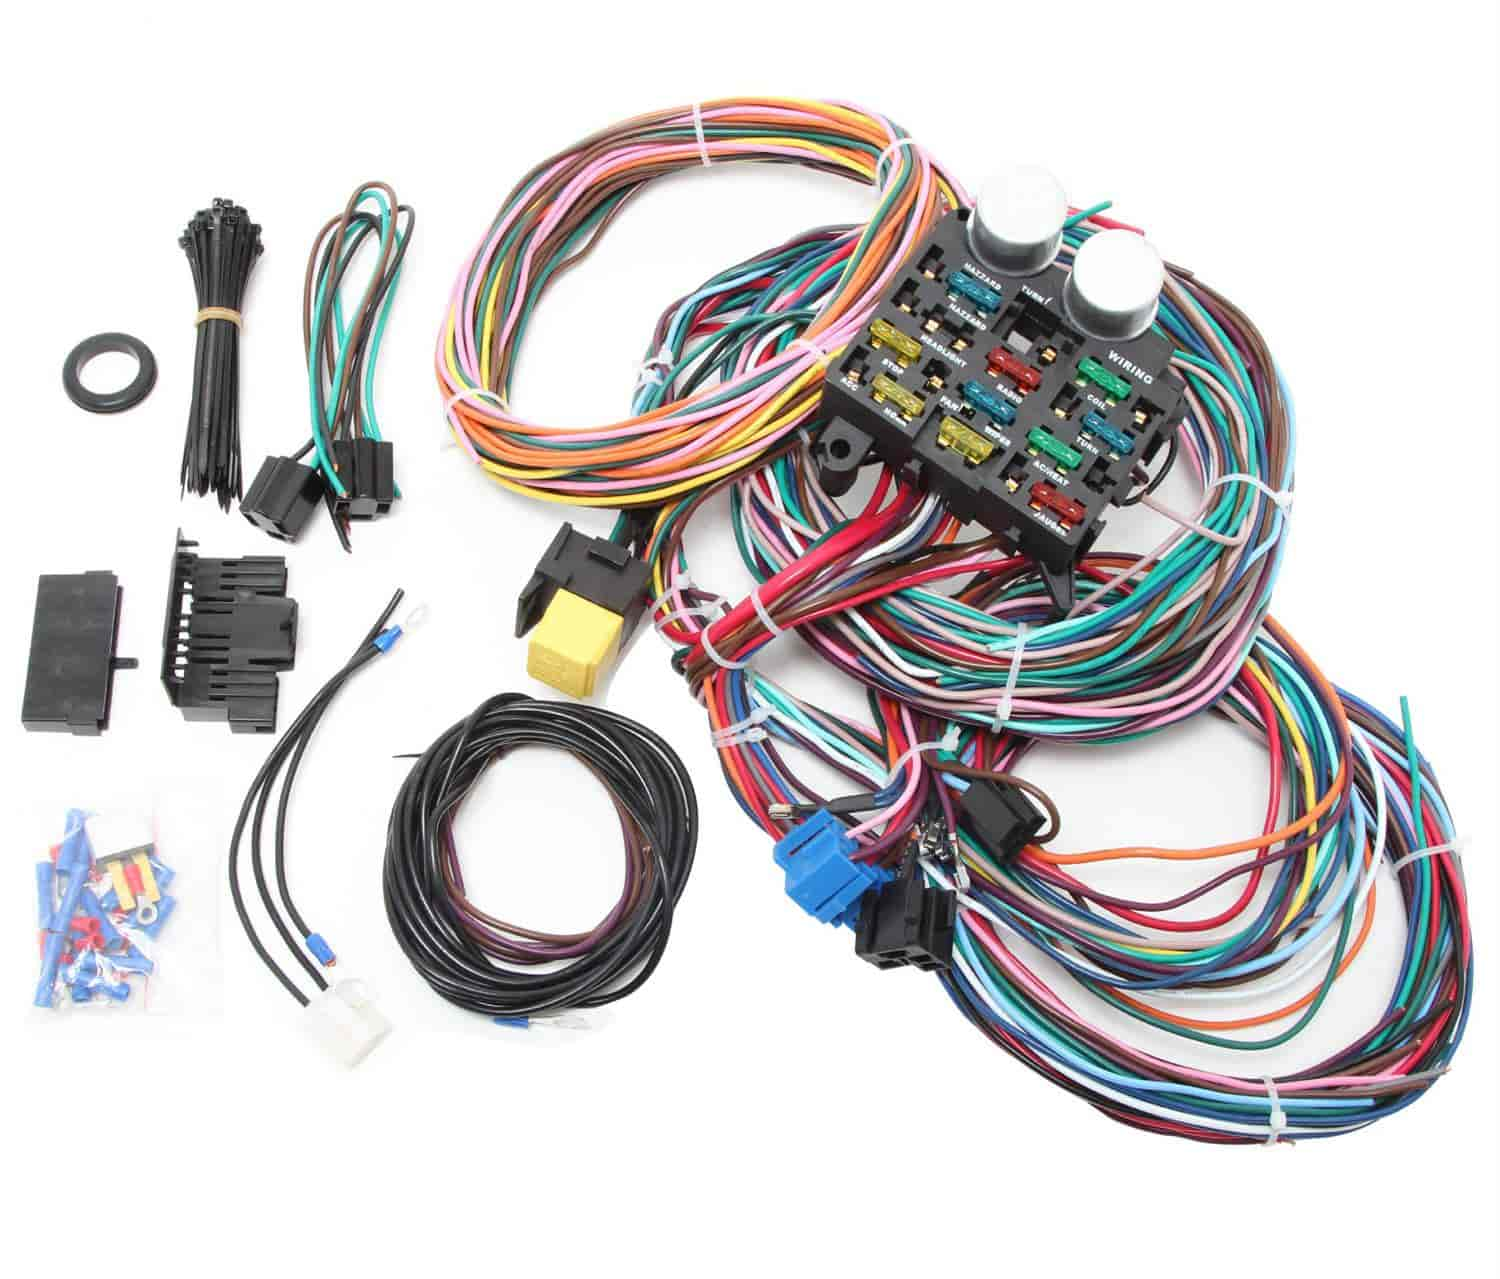 707 r1002x rpc r1002x universal 12 circuit wire harness kit jegs VW Wiring Harness Kits at sewacar.co